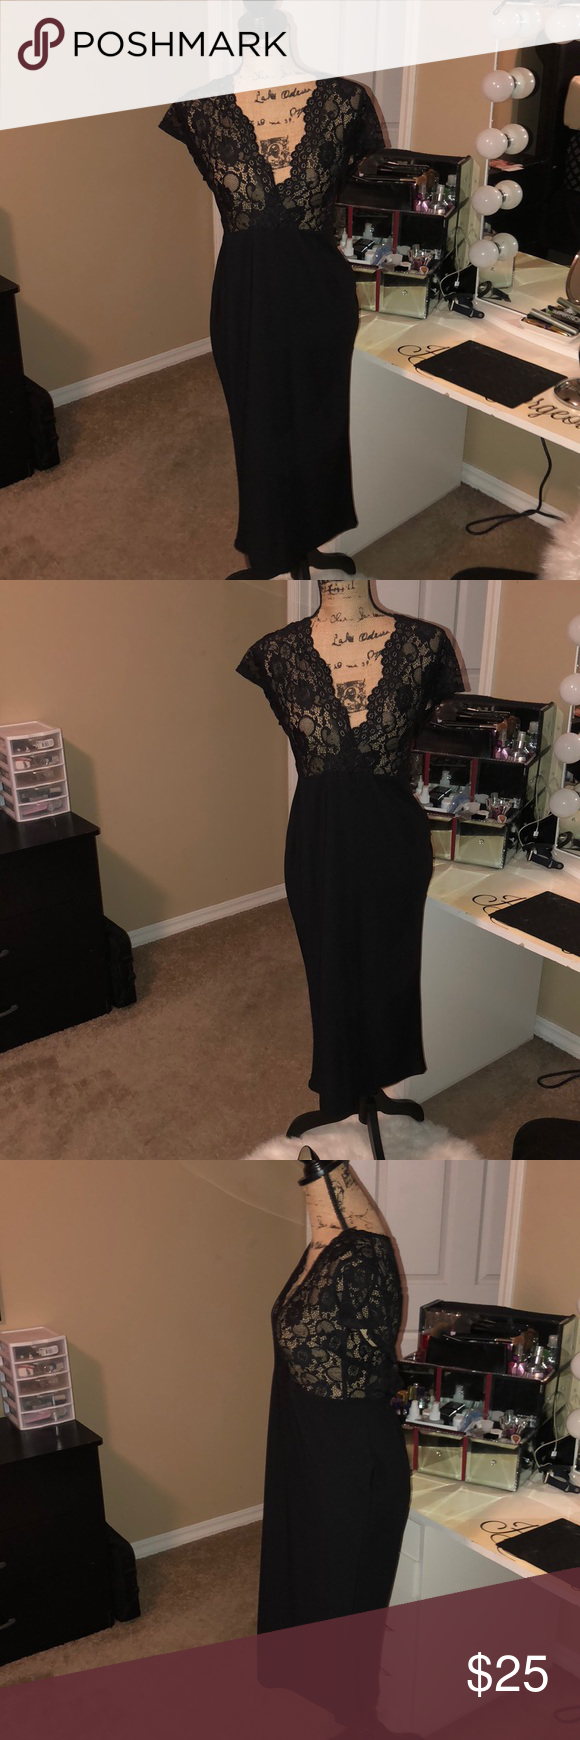 Boohoo Black Fitted Dress In Size 14 Black Dress With Sheer Top Fitted Brand New With Tags Size 14 Boo Hoo Dresses Fashion Fitted Black Dress Fashion Design [ 1740 x 580 Pixel ]